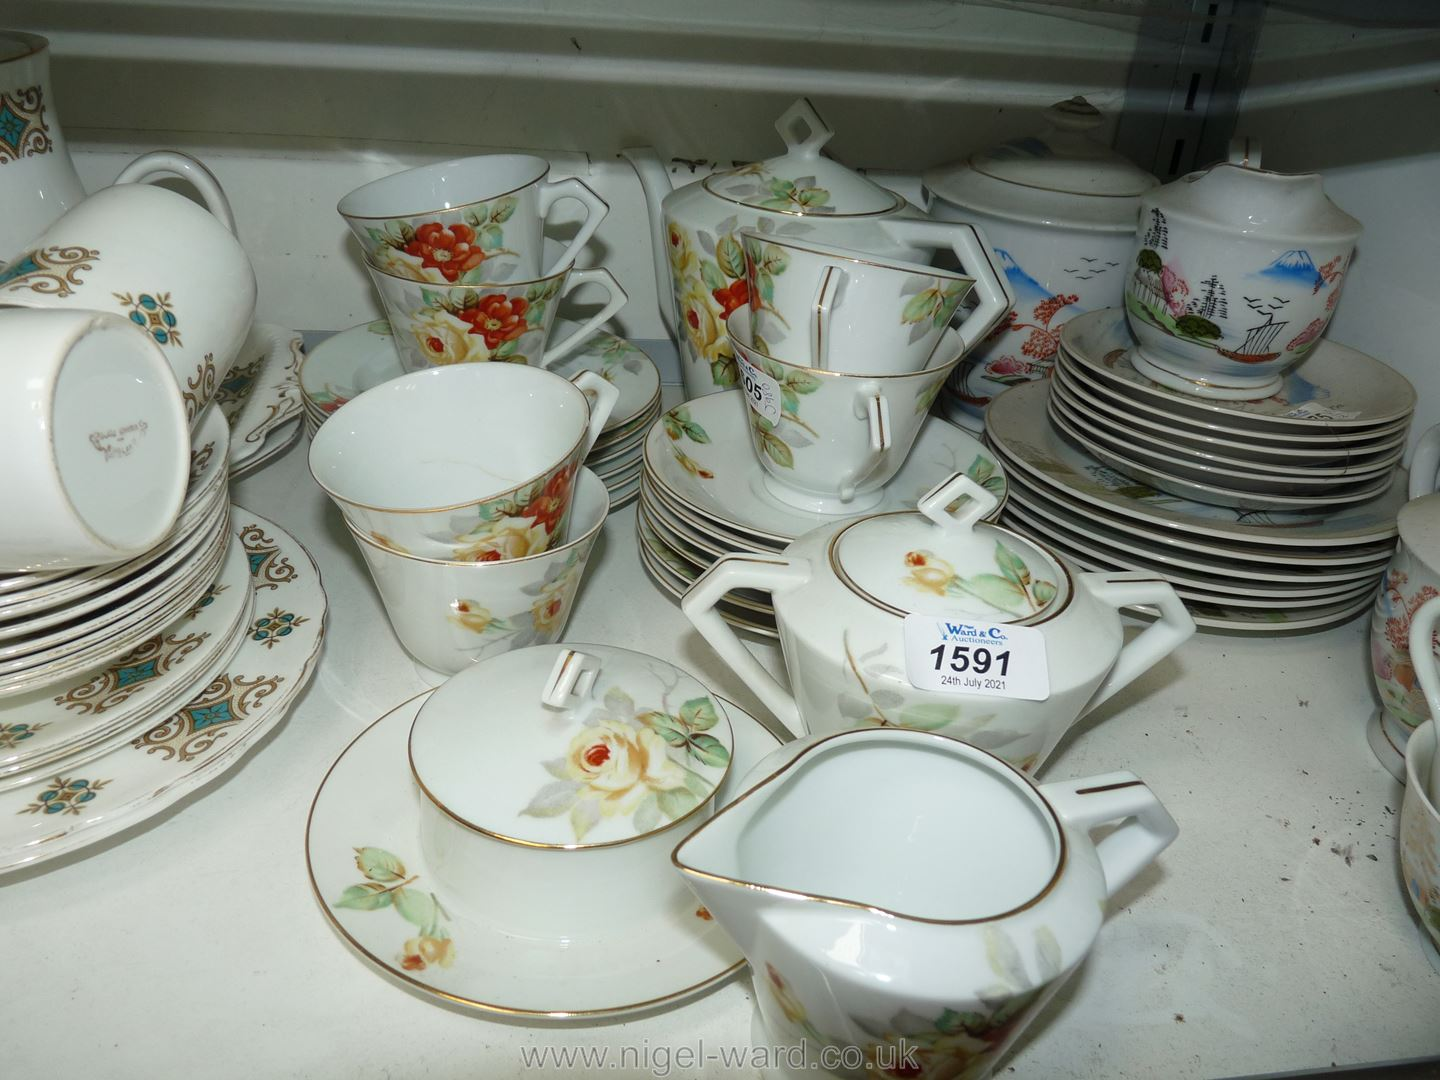 A Noritake tea service with orange and yellow flower pattern including six cups and saucers, - Image 2 of 2